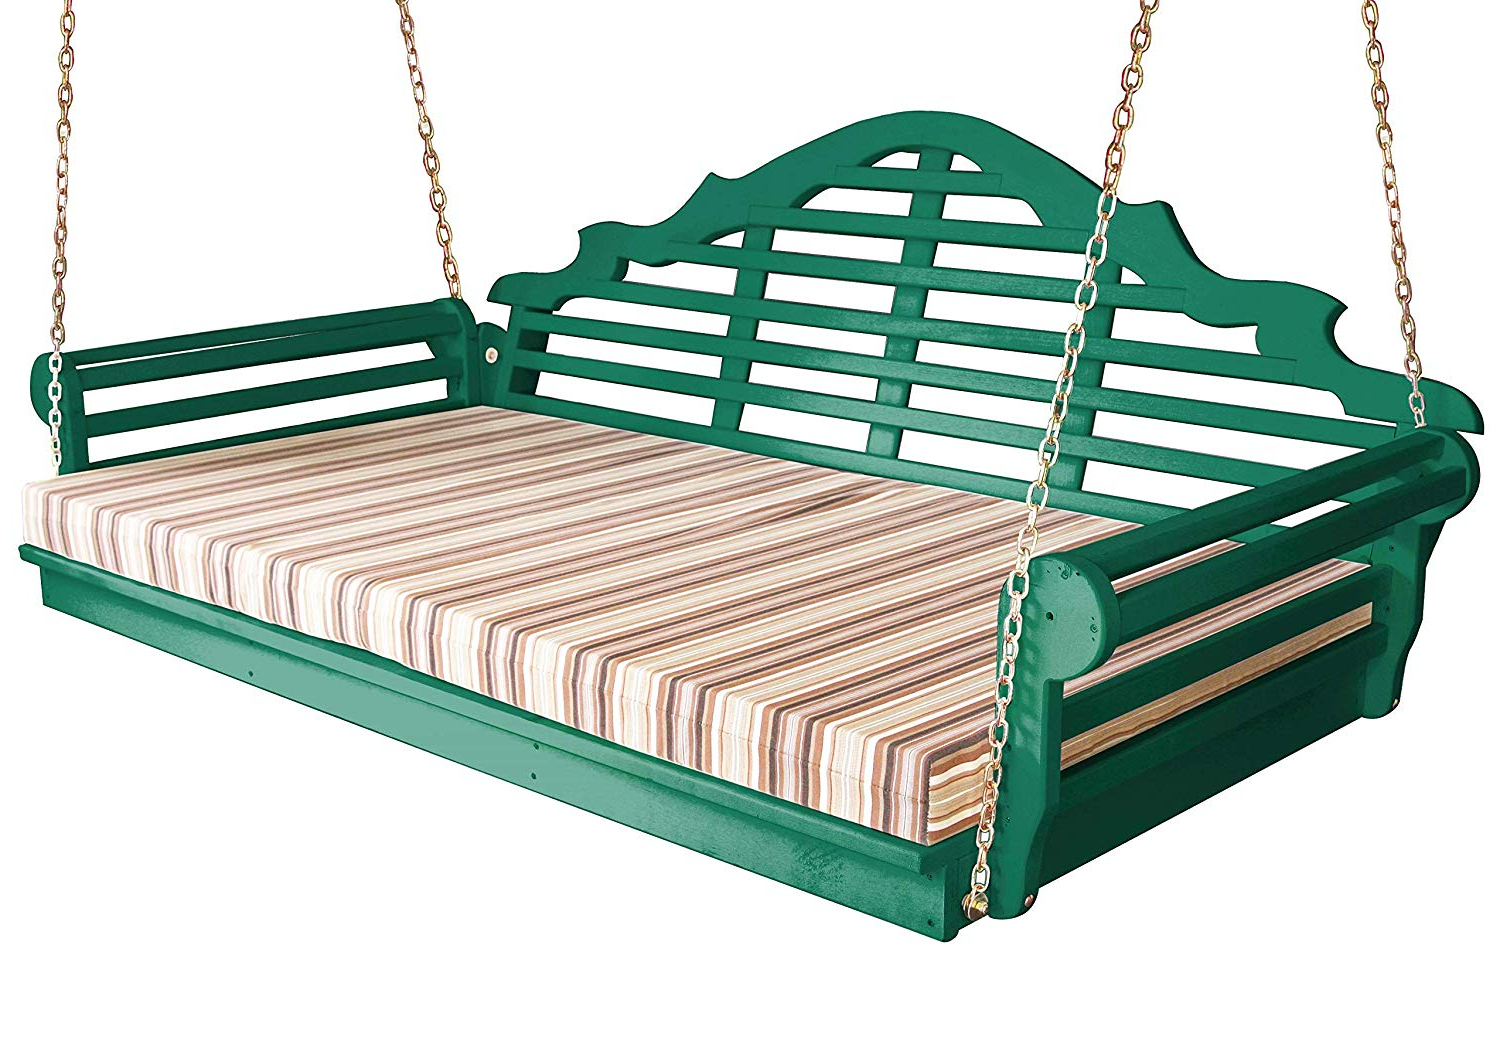 Favorite Amazon : Best Porch Swing Bed, Outdoor Swinging Daybed Throughout Country Style Hanging Daybed Swings (View 6 of 30)